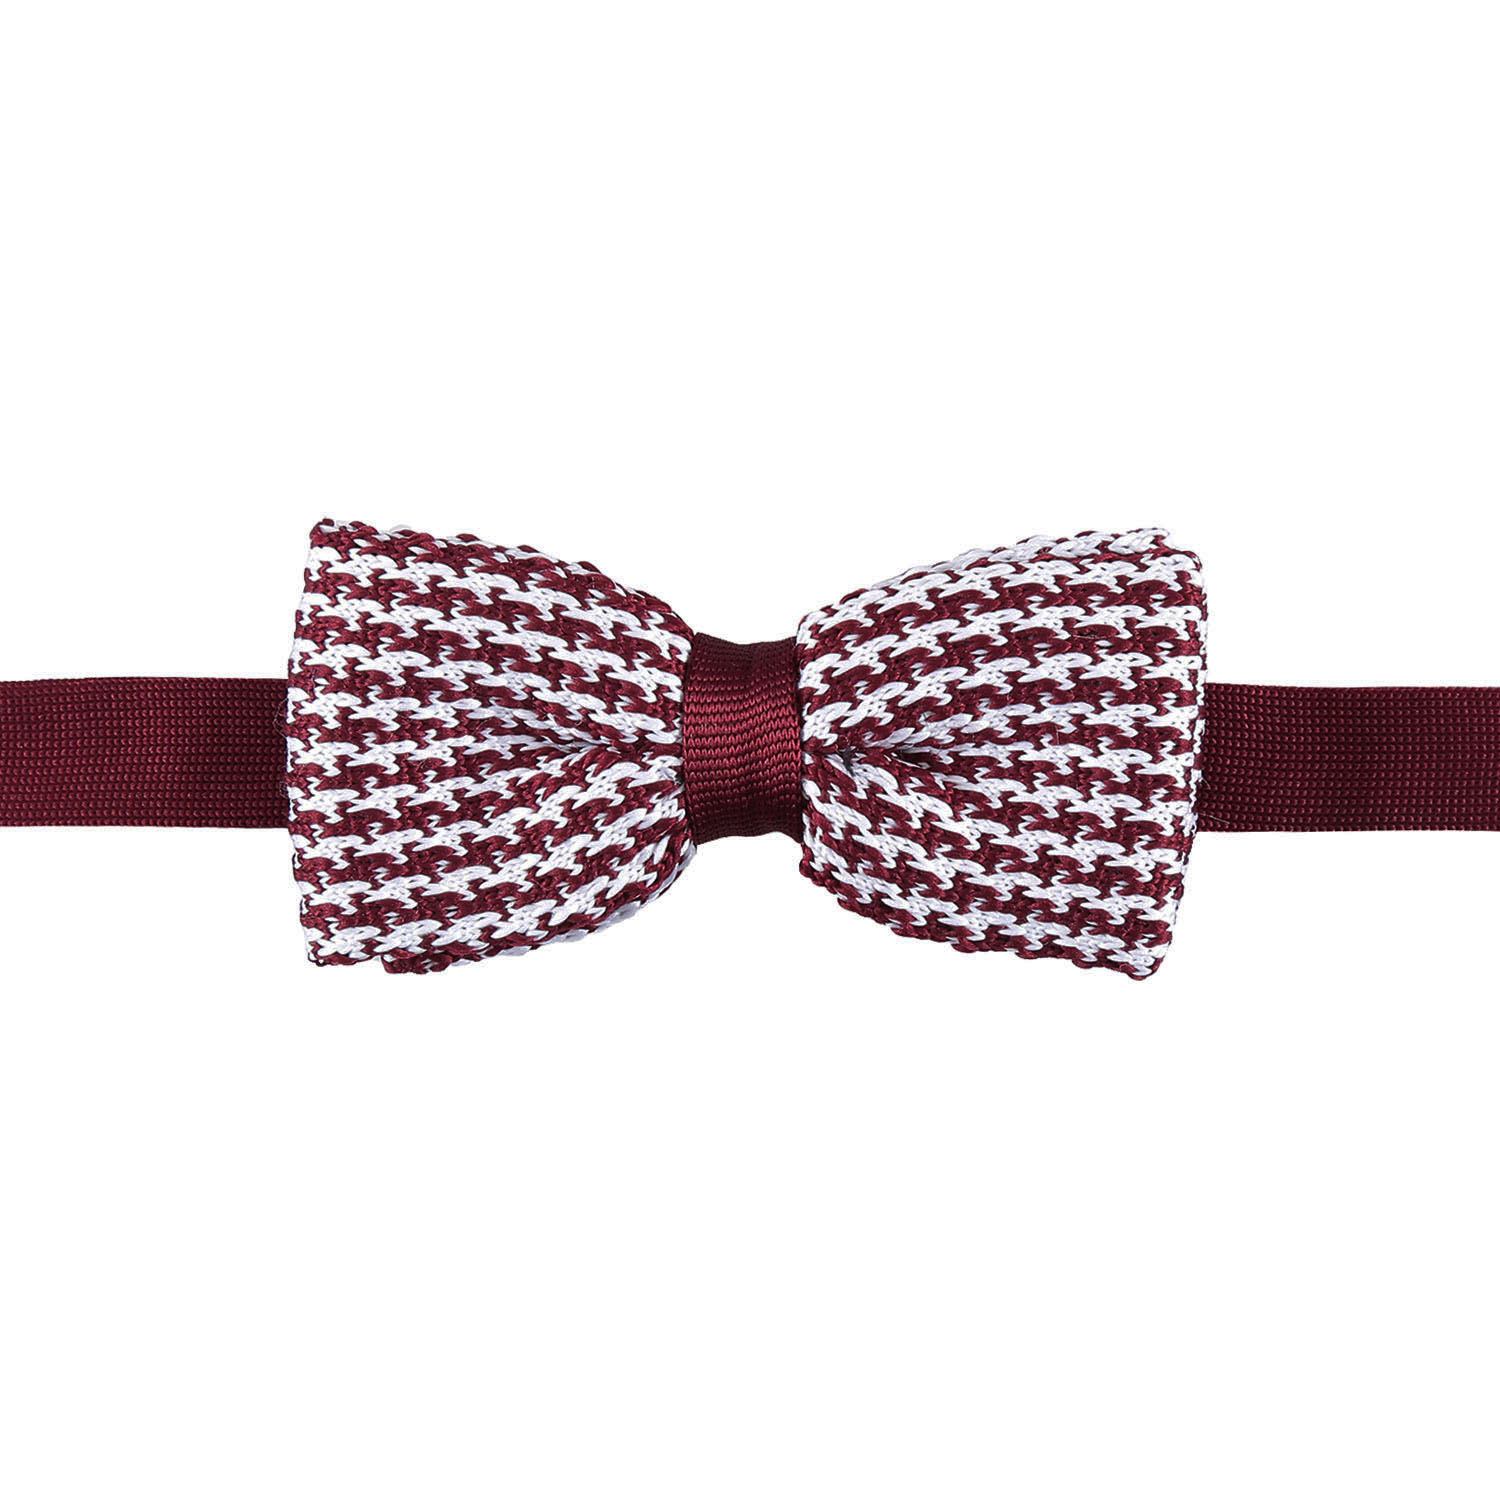 White and Burgundy Houndstooth Knitted PreTied Thistle Bow Tie  James Alexander